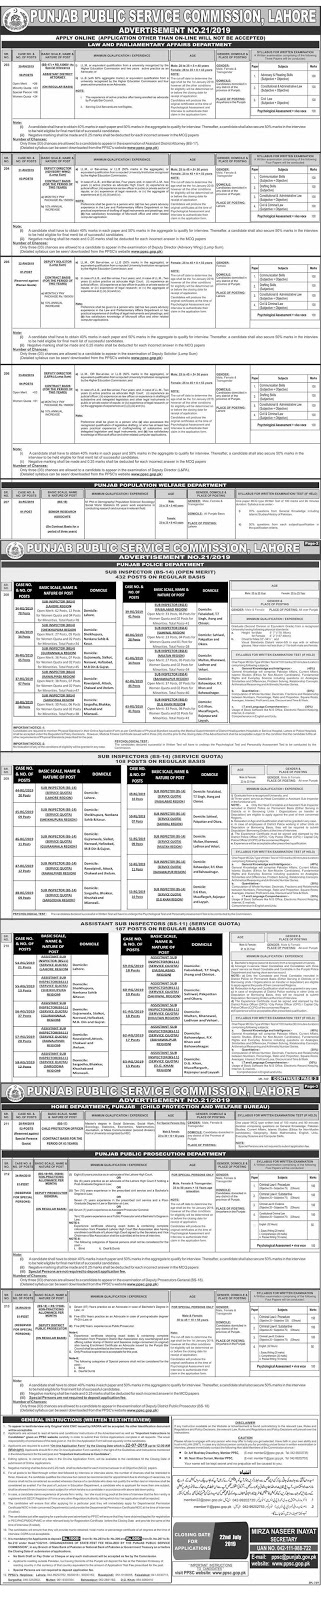 PPSC Latest Jobs, PPSC Jobs july 2019, ppsc punjab police jobs